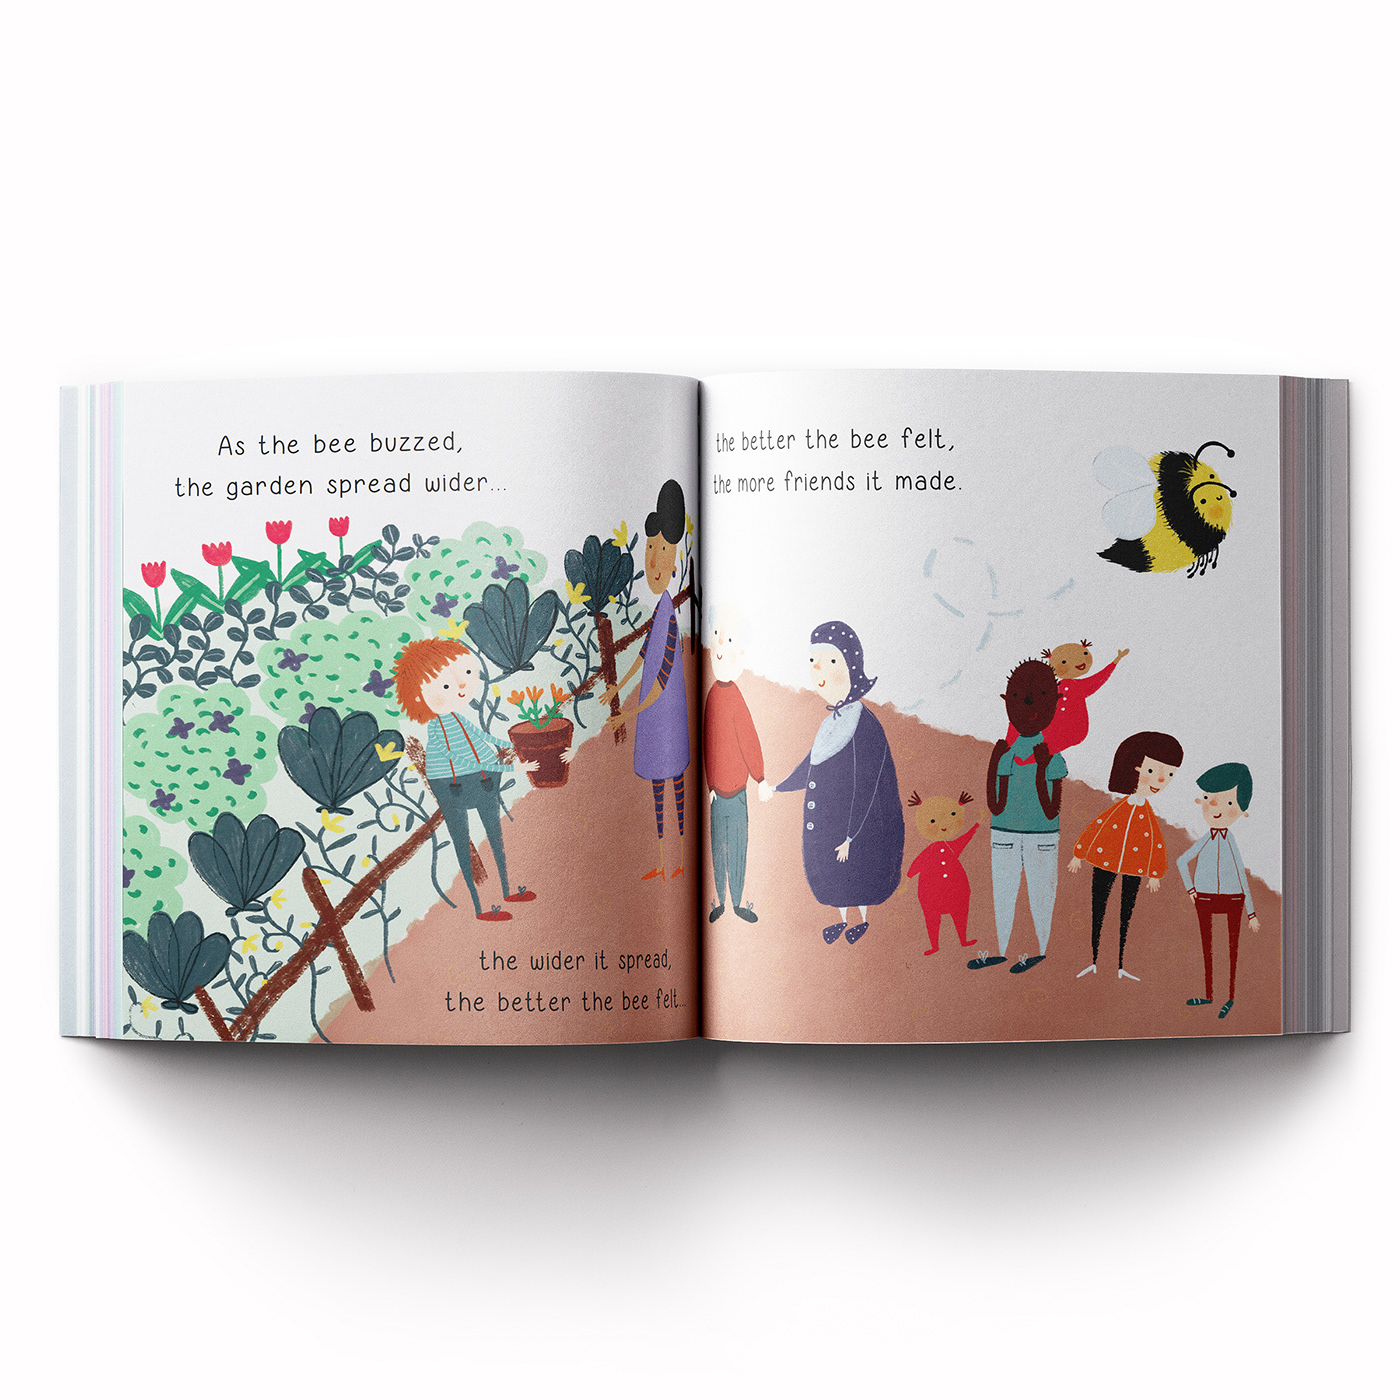 children's book ILLUSTRATION  bees colony collapse disorder